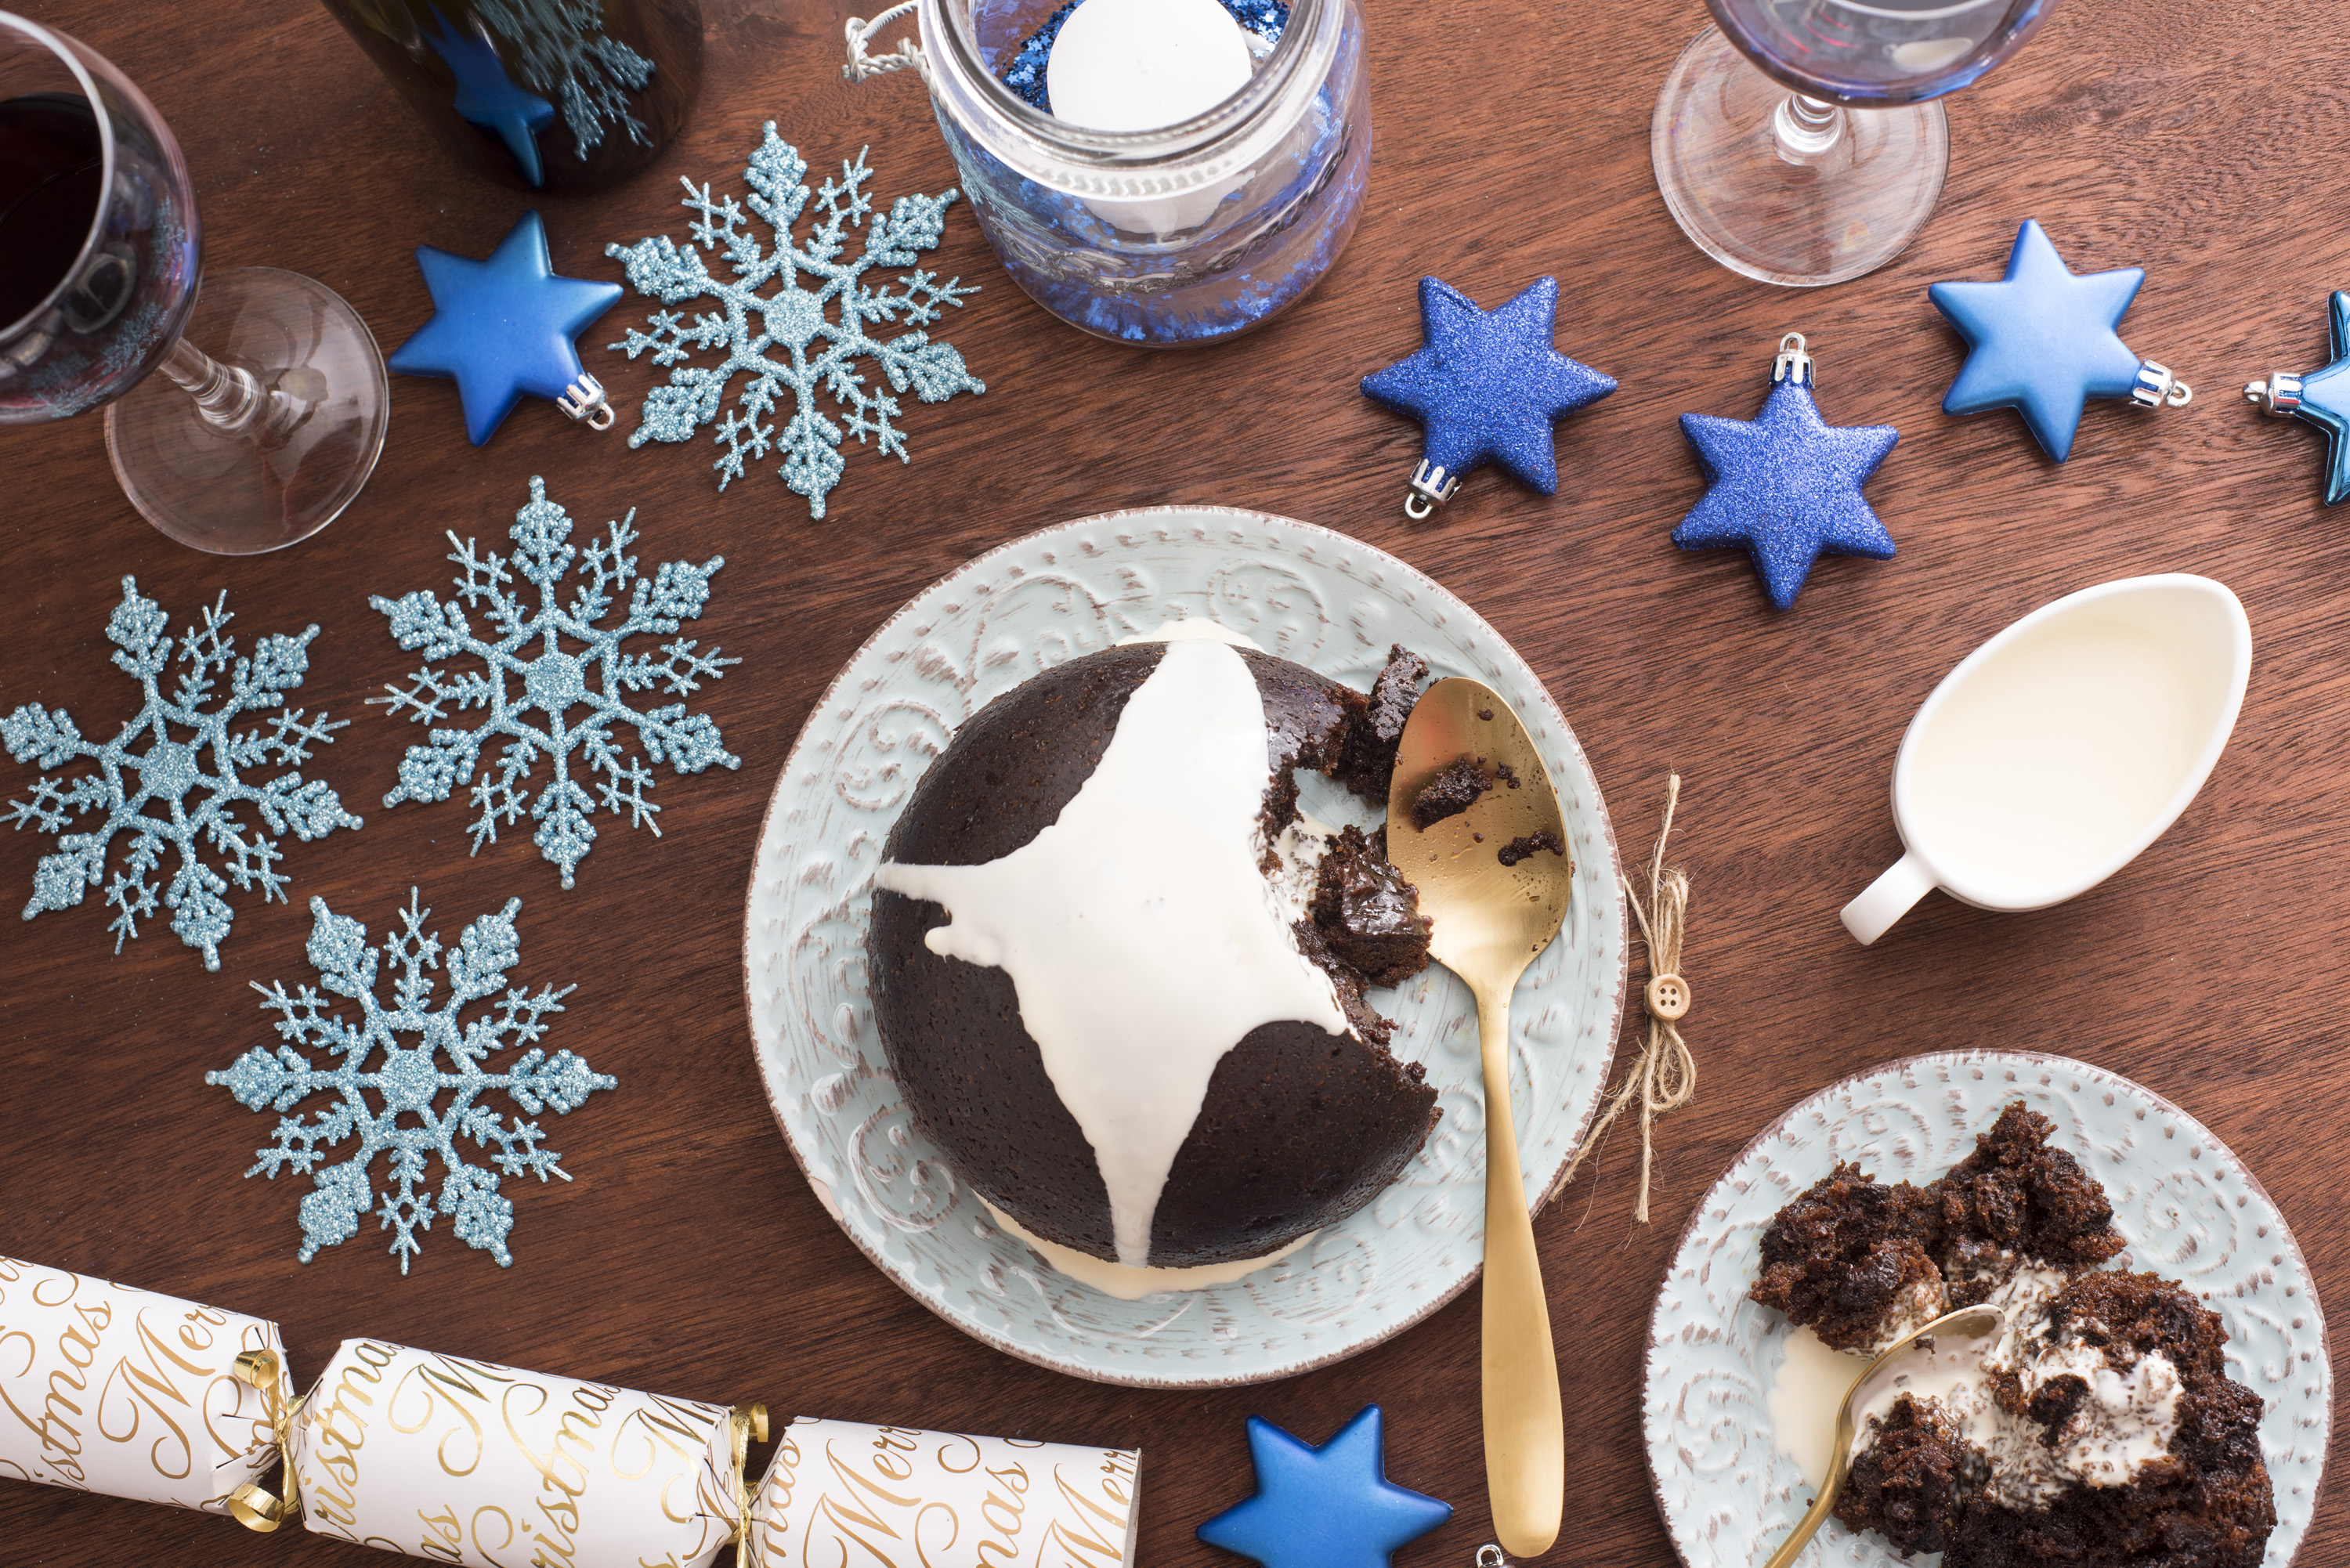 An array of xmas decorations and achristmas pudding e on a plate